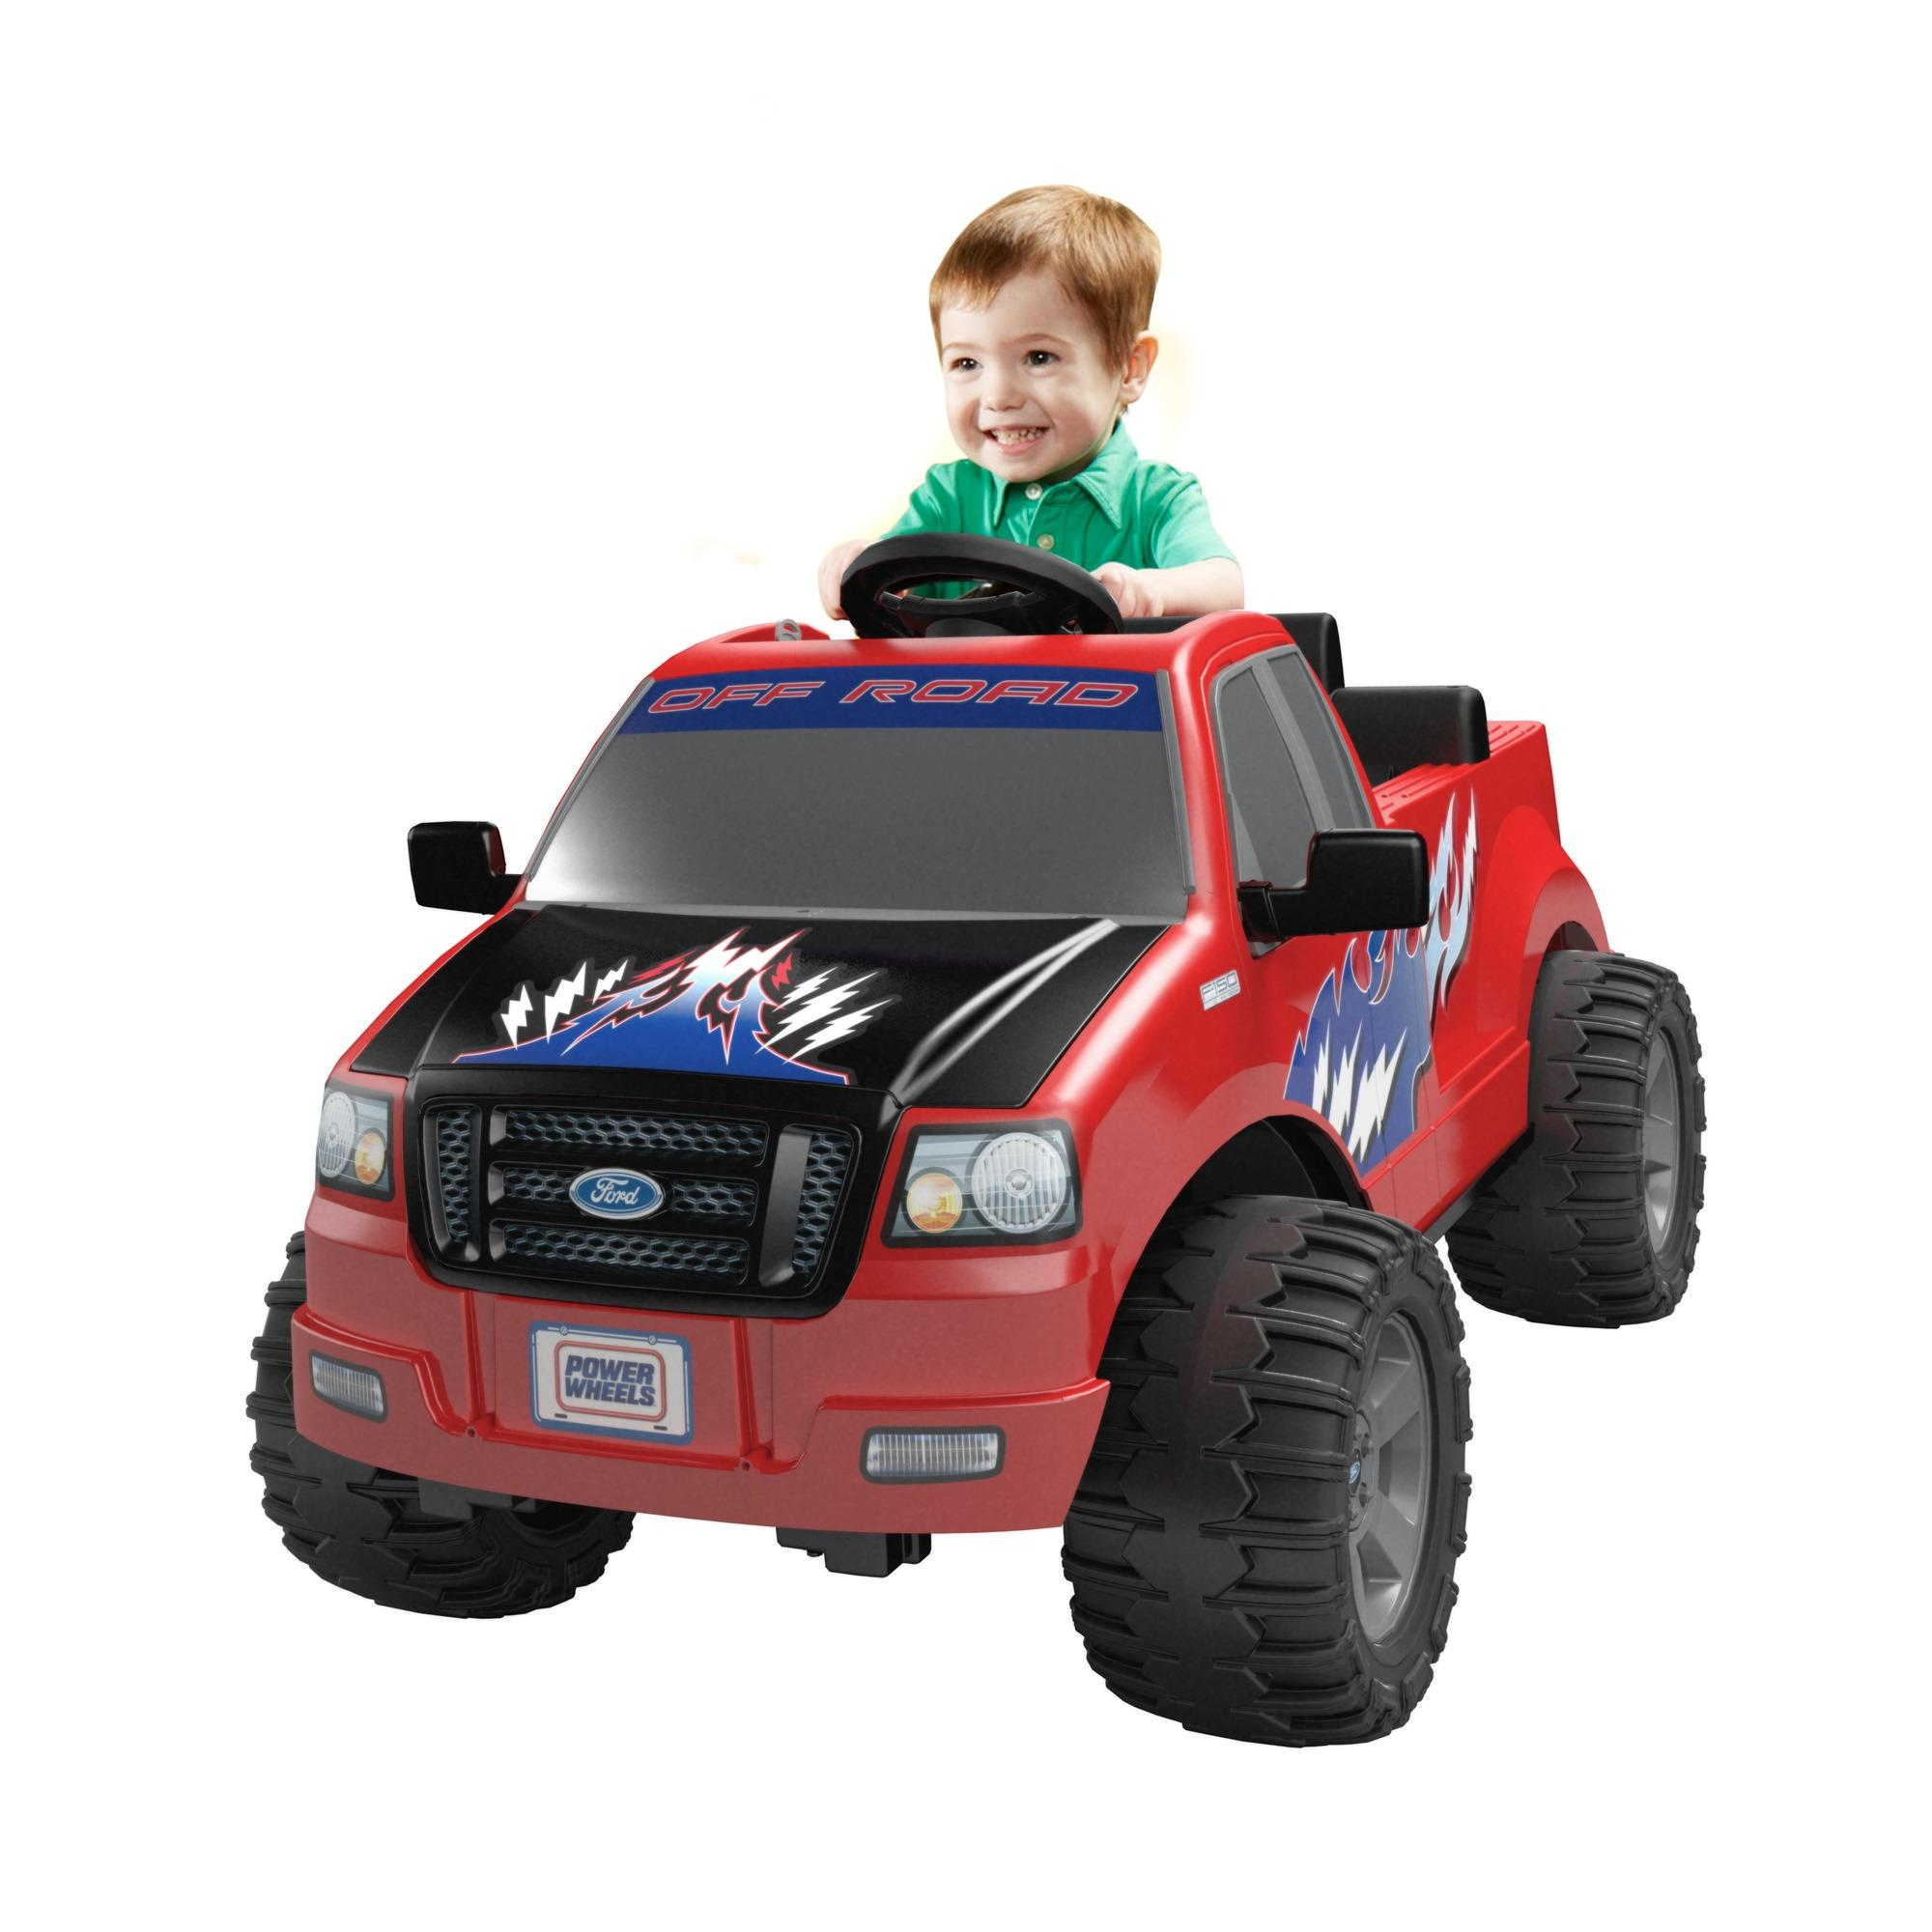 Power Wheels Ford Lil' F-150 Battery-Operated Ride-On